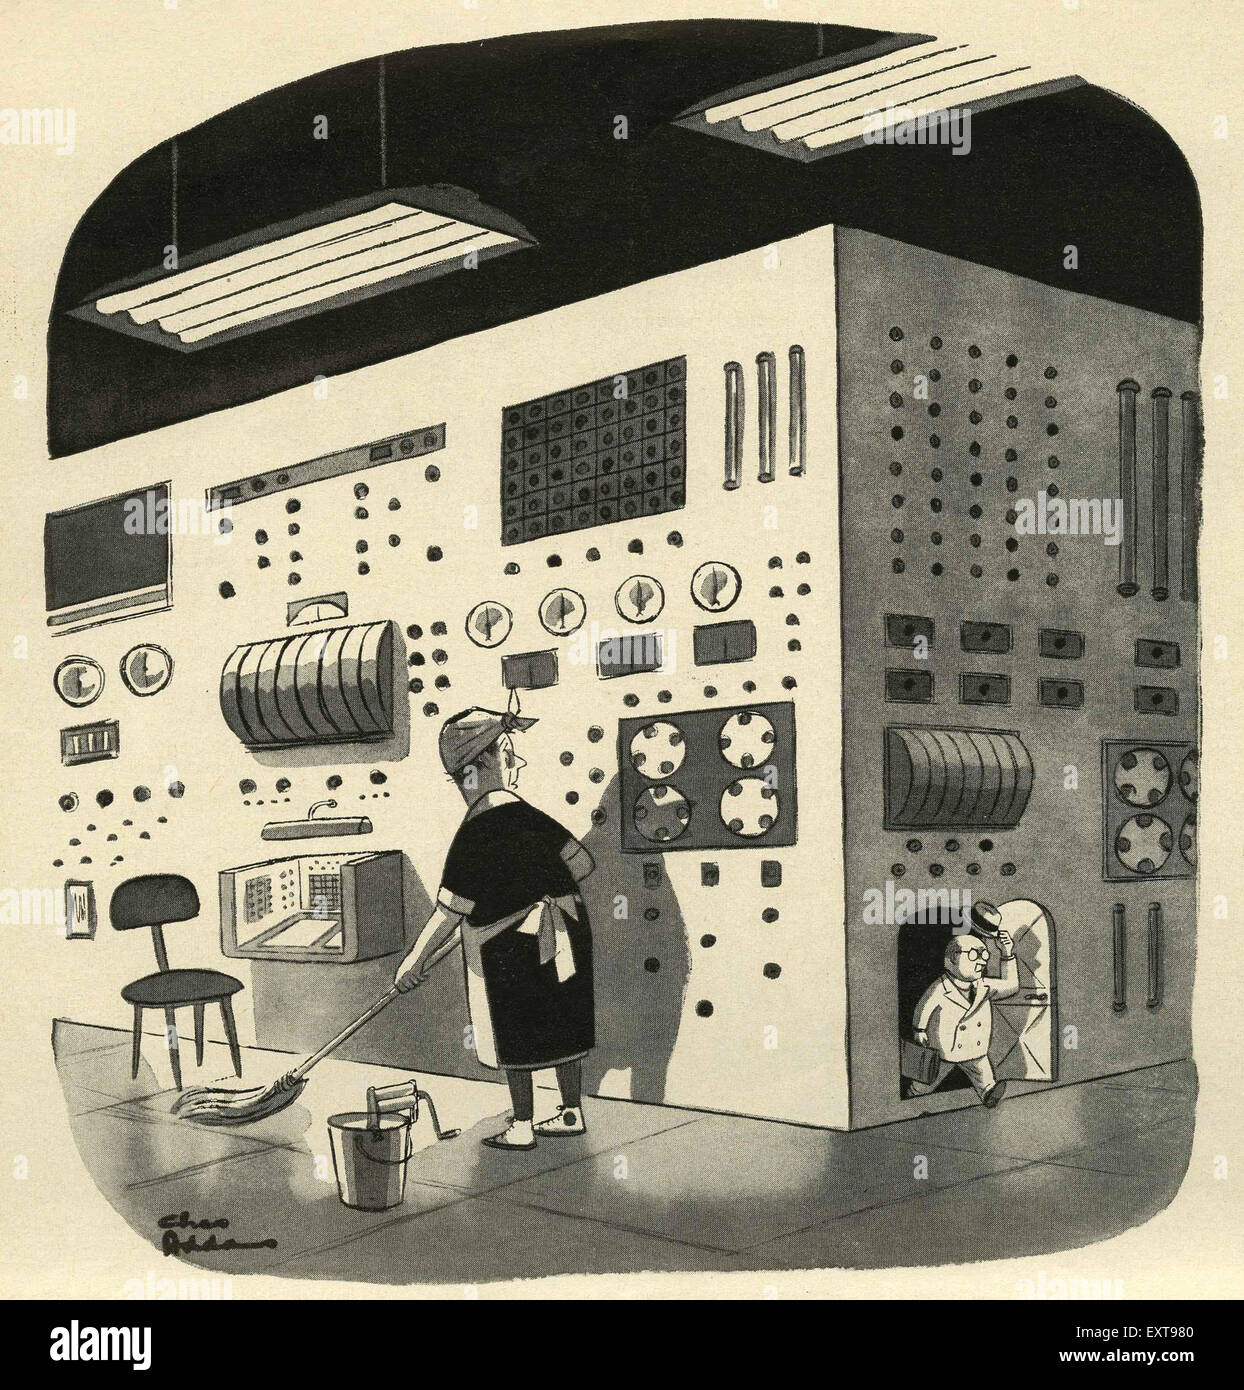 1950s UK Technology Comic/ Cartoon Plate - Stock Image